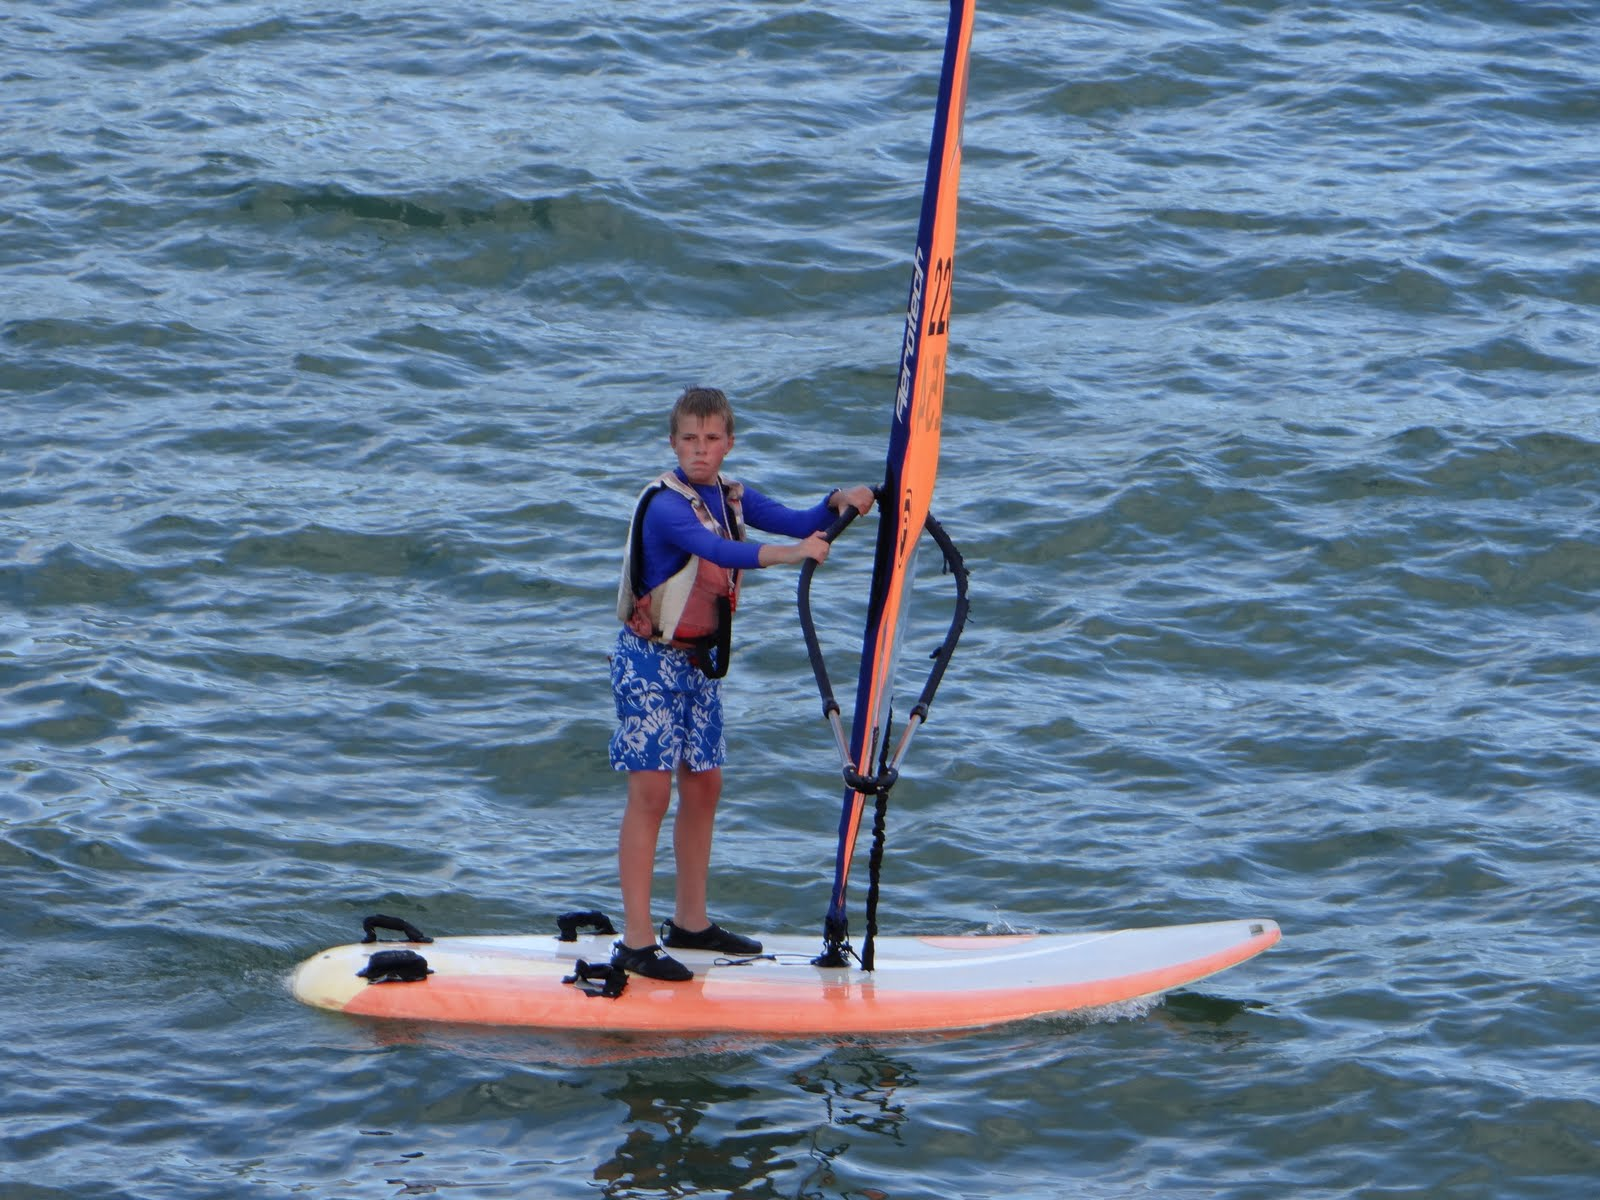 lokaal vriend watersport